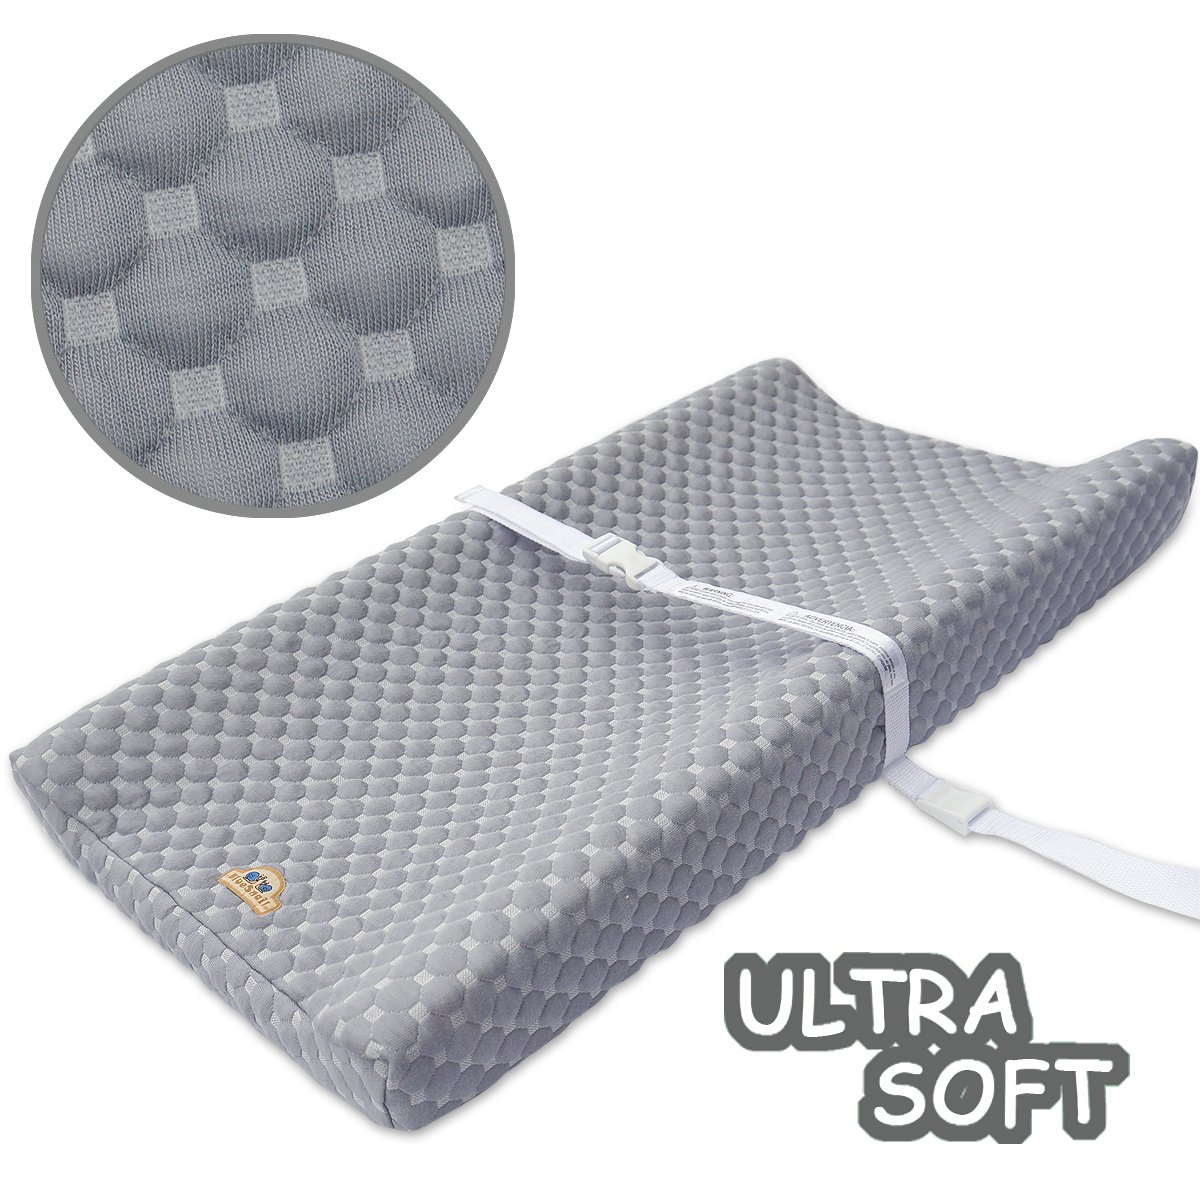 Super Soft and Comfy Changing Pad Cover for Baby by BlueSnail (Gray)